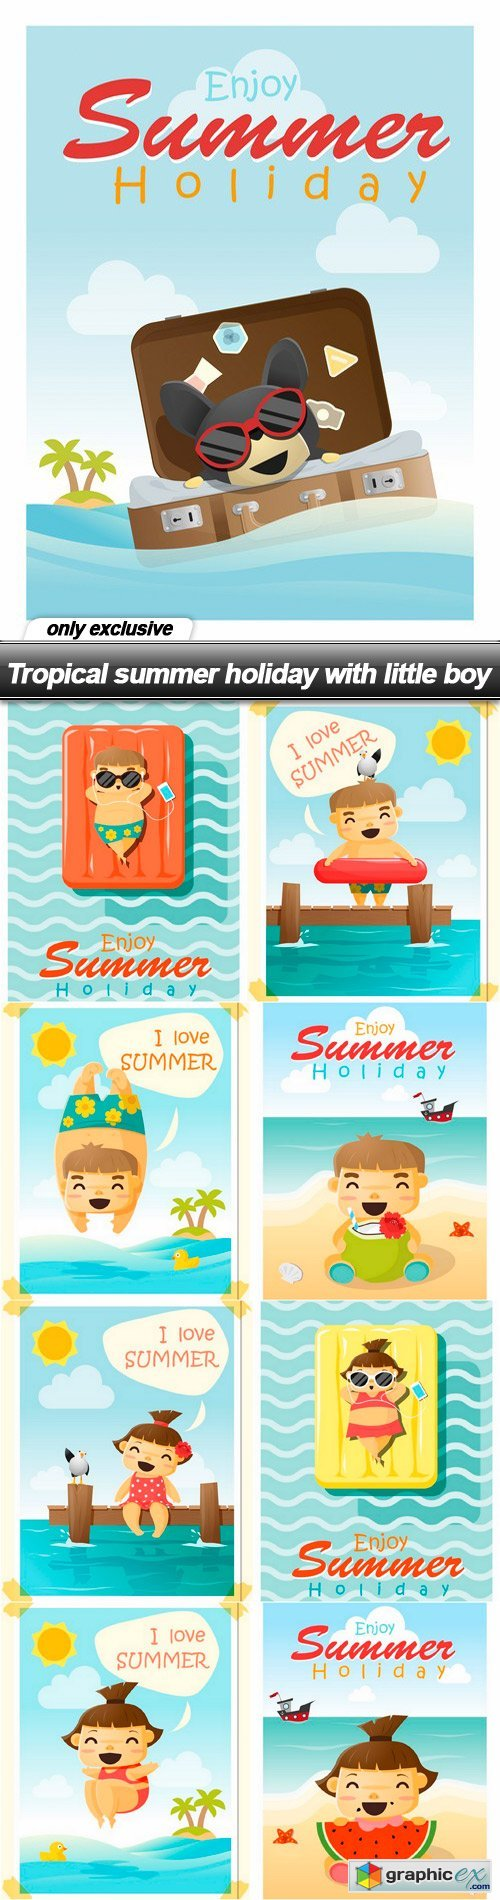 Tropical summer holiday with little boy - 9 EPS